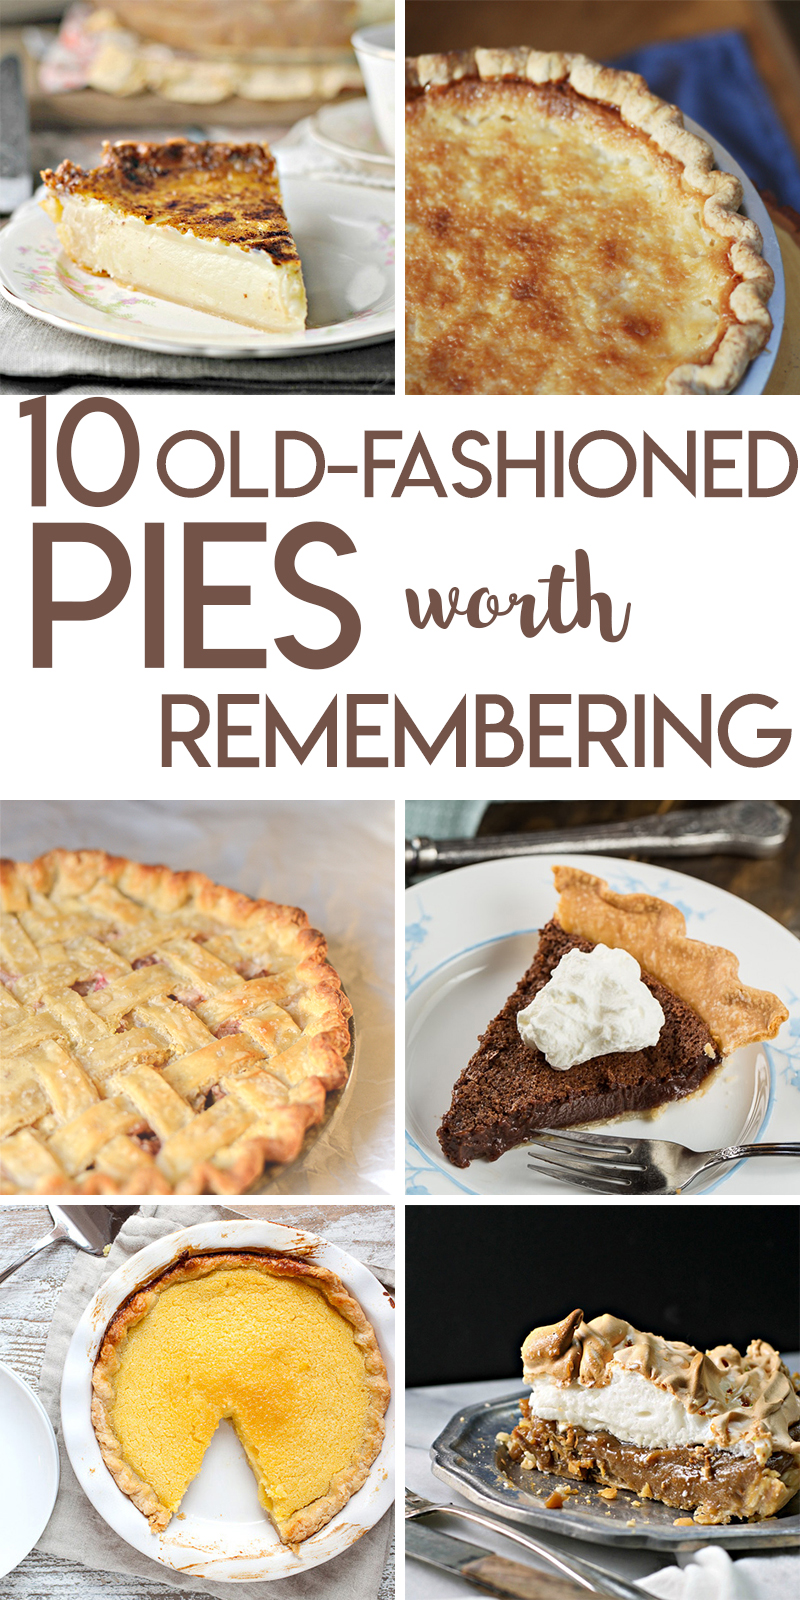 10 Old Fashioned Pies worth Remembering this Holiday Season